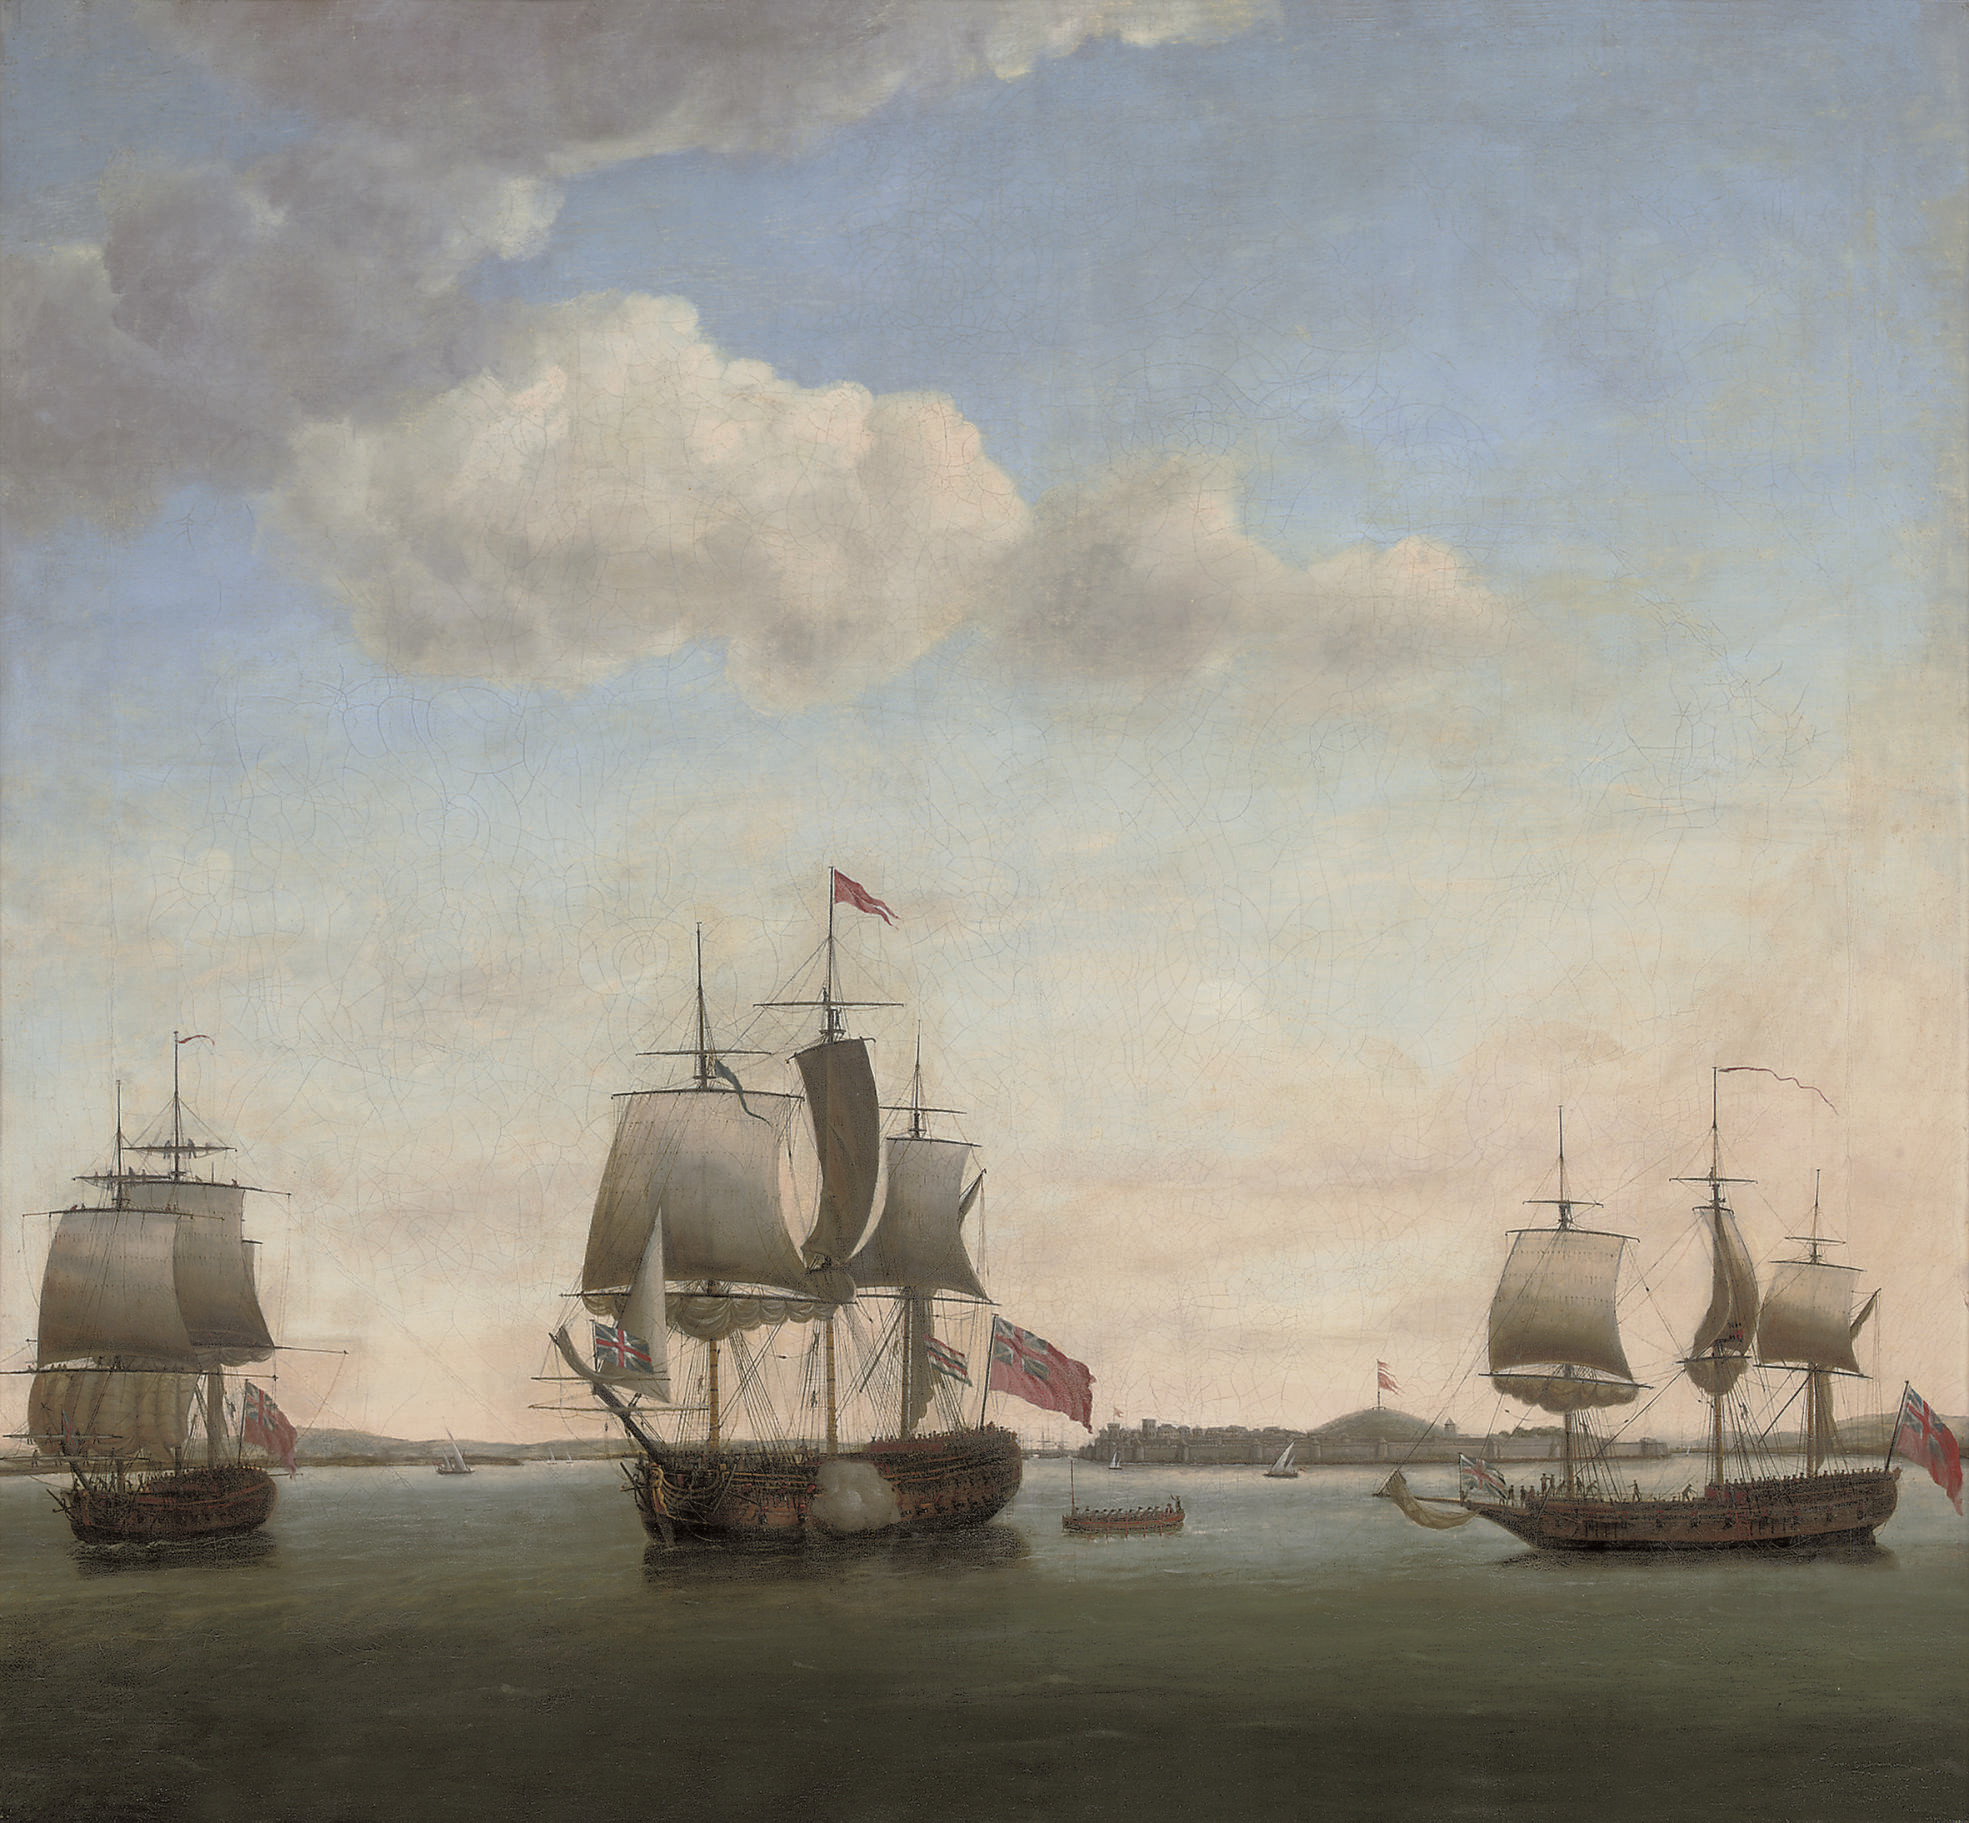 Commodore James in the Protector, with the Revenge and the grab Bombay in the bay off the Suvarnadrug fort at Gheriah, India, April 1755